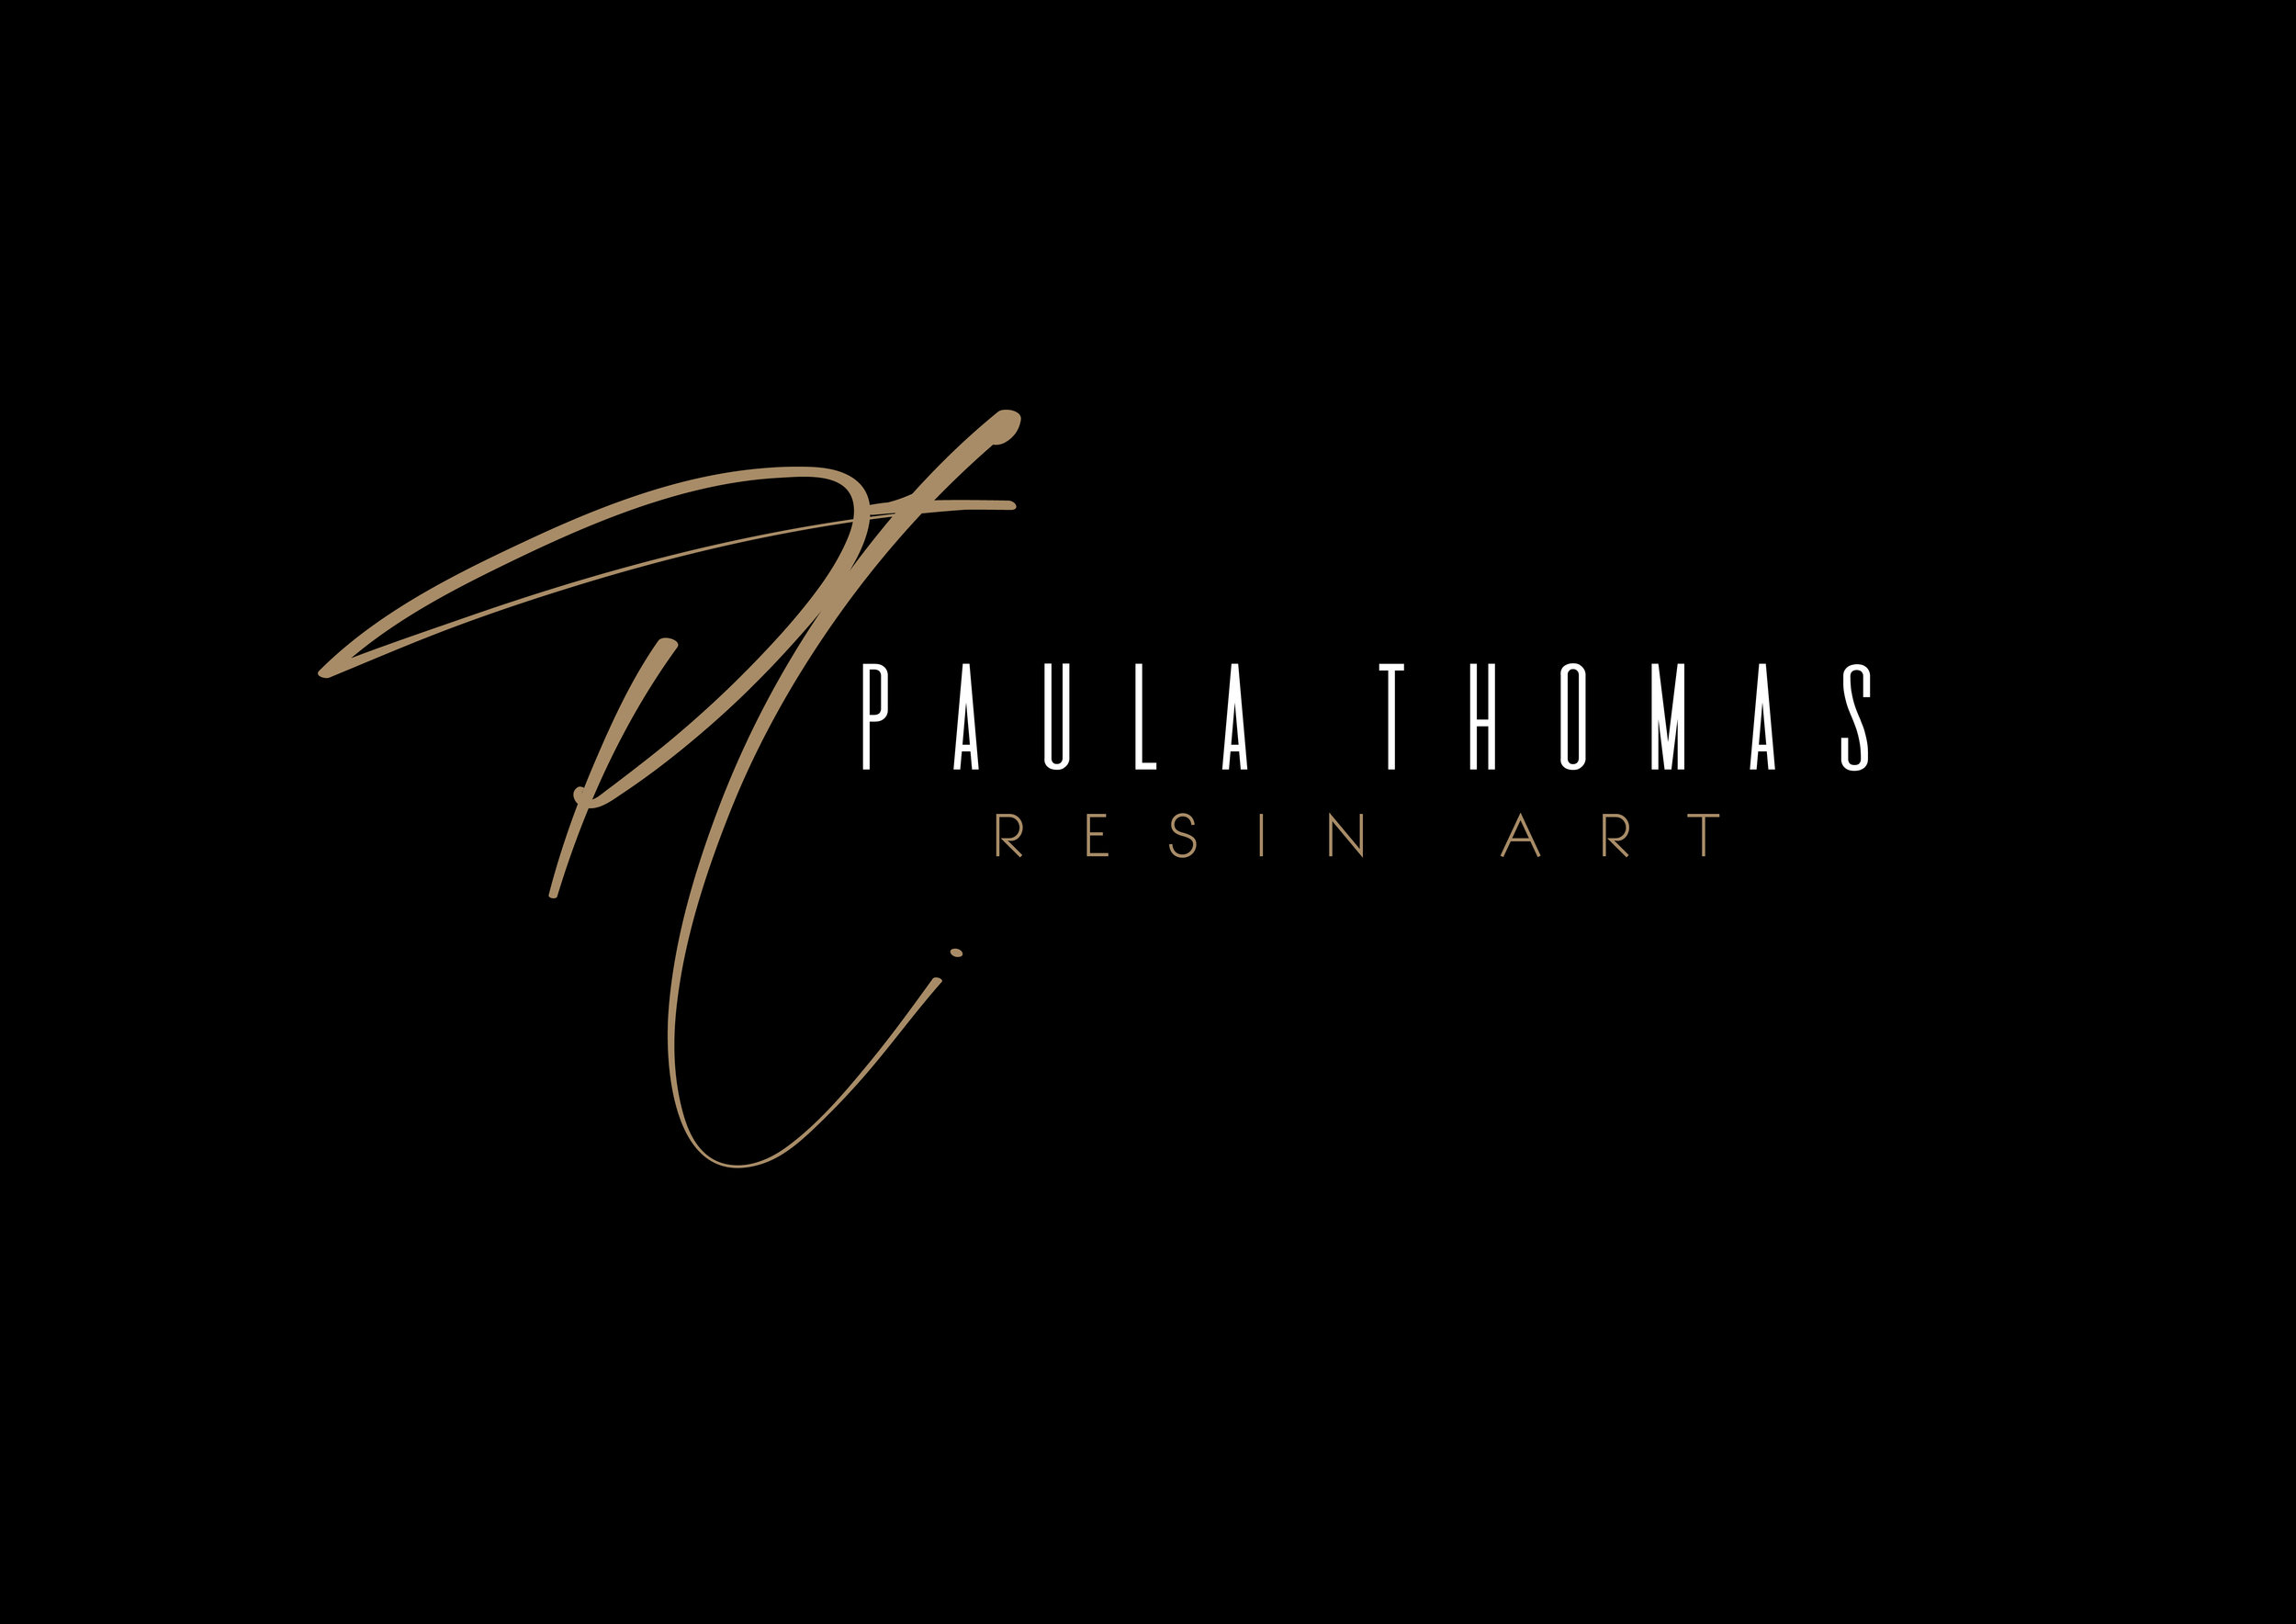 Paula Thomas Resin Art logo.jpg